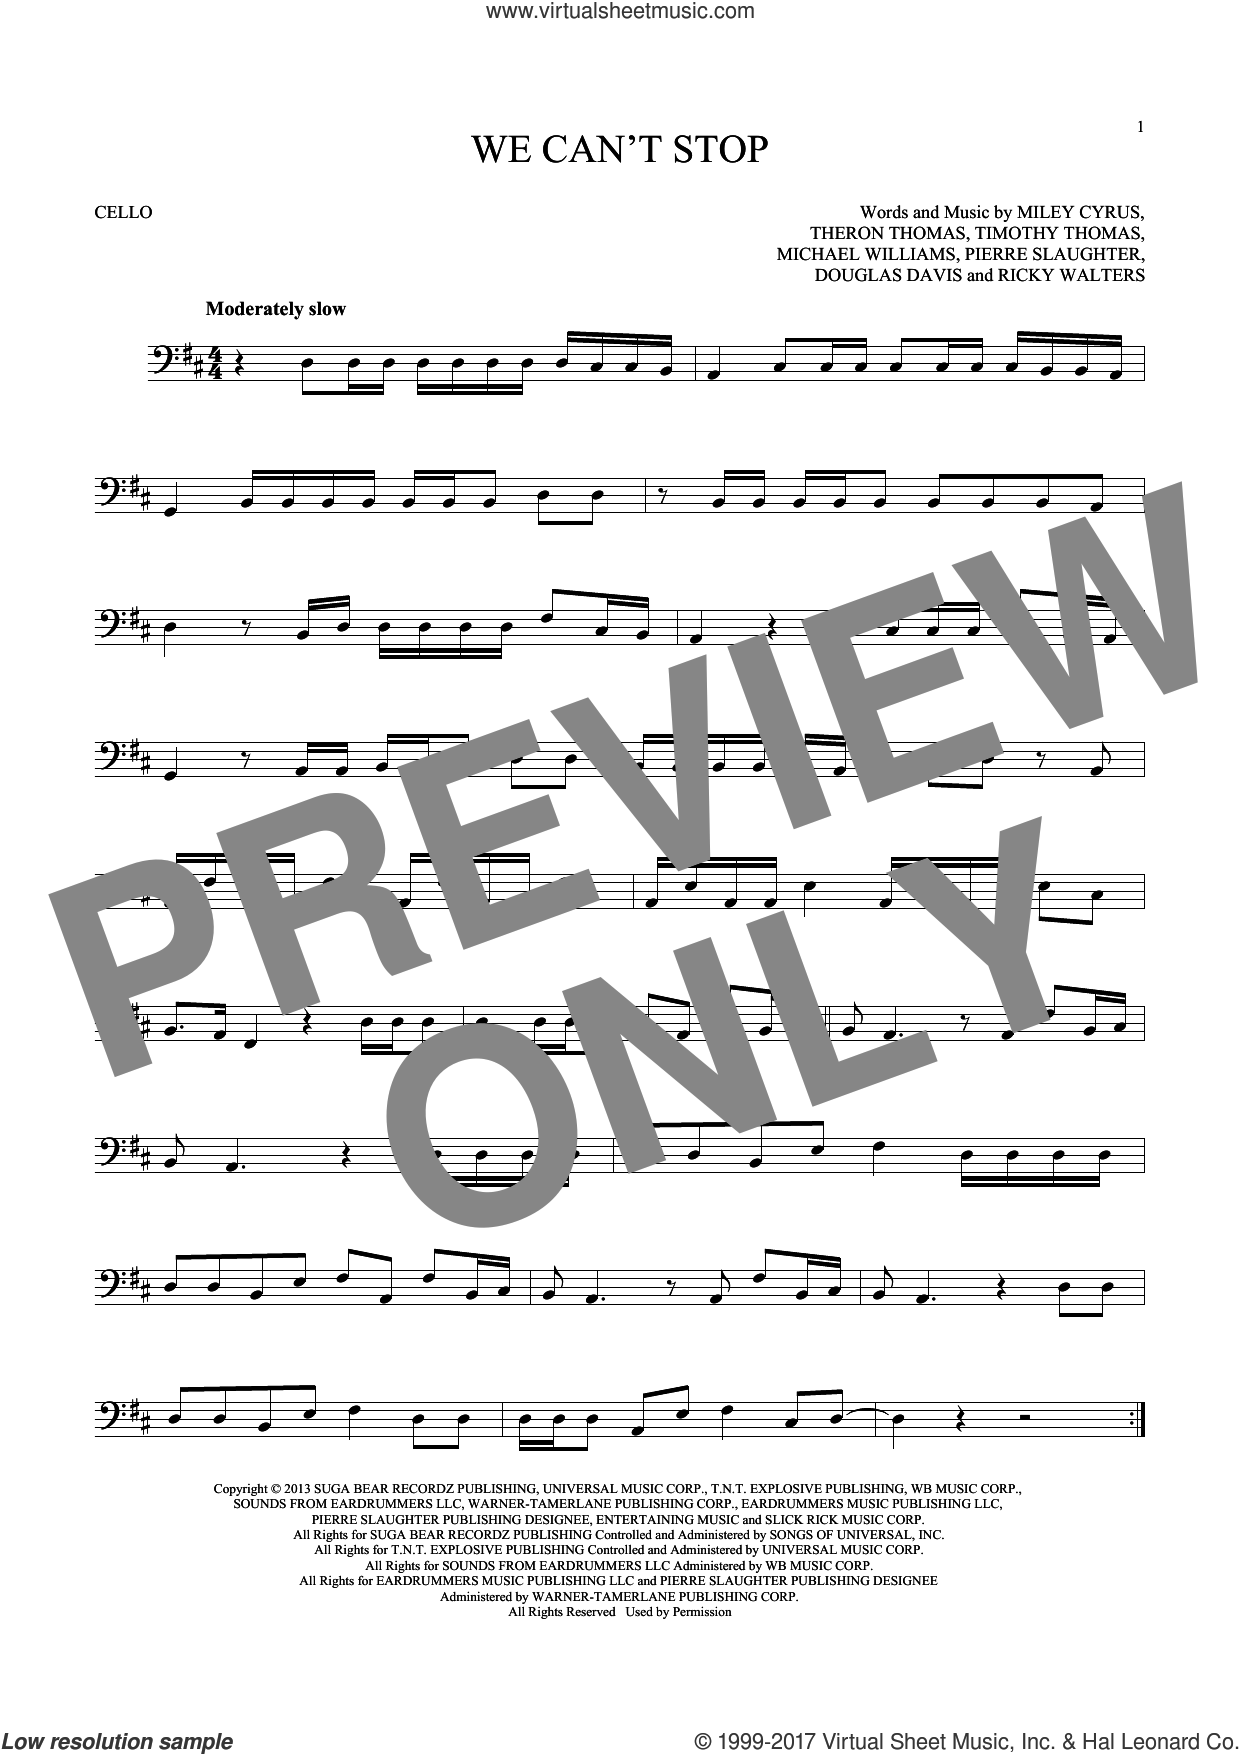 We Can't Stop sheet music for cello solo by Miley Cyrus, Douglas Davis, Michael Williams, Pierre Slaughter, Ricky Walters, Theron Thomas and Timmy Thomas, intermediate skill level